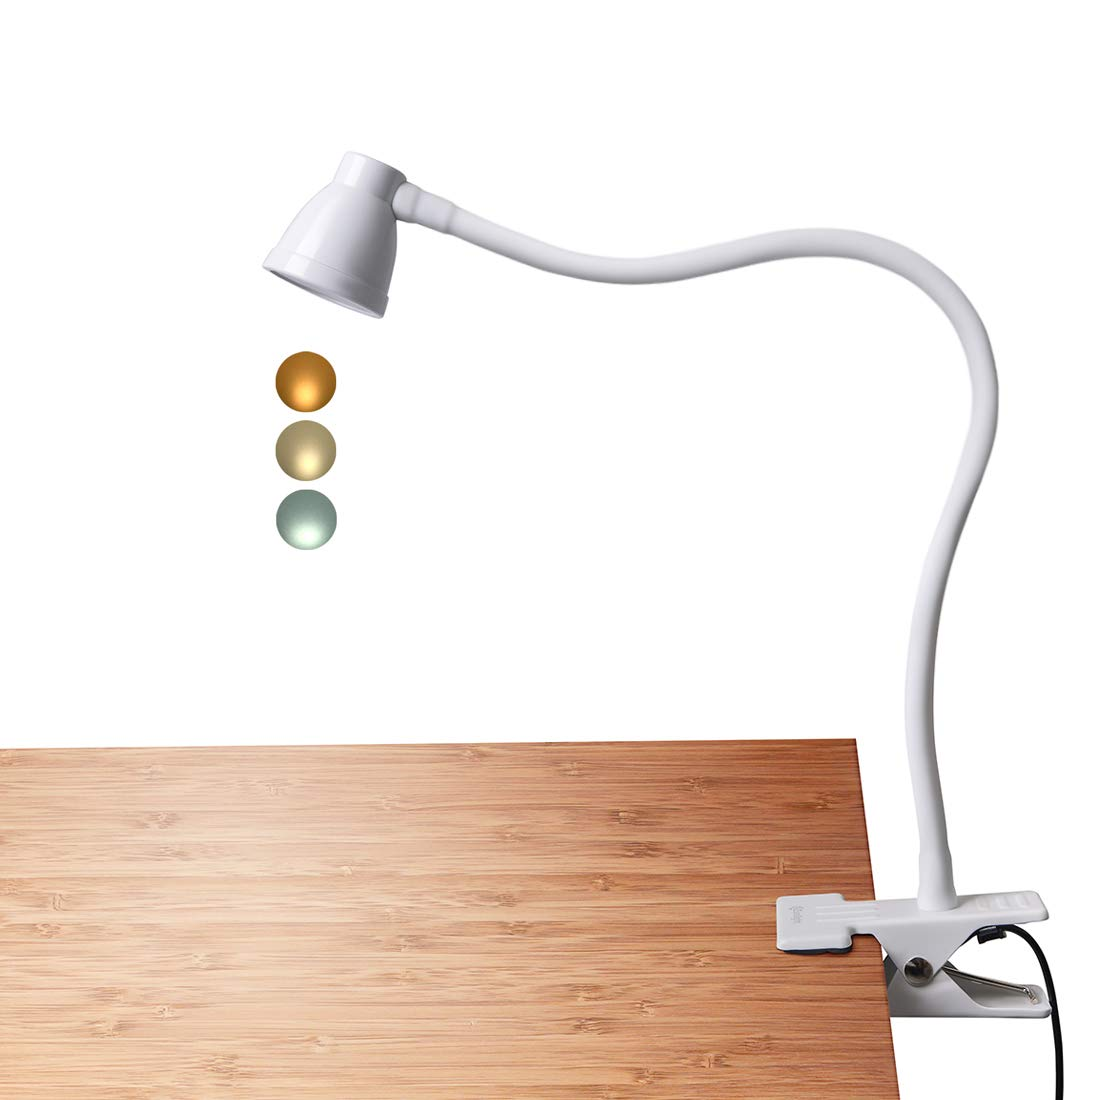 CeSunlight Clamp Desk Lamp, Clip on Reading Light, 3000-6500K Adjustable Color Temperature, 6 Illumination Modes, 10 Led Beads, AC Adapter and USB Cord Included (White) A8-White